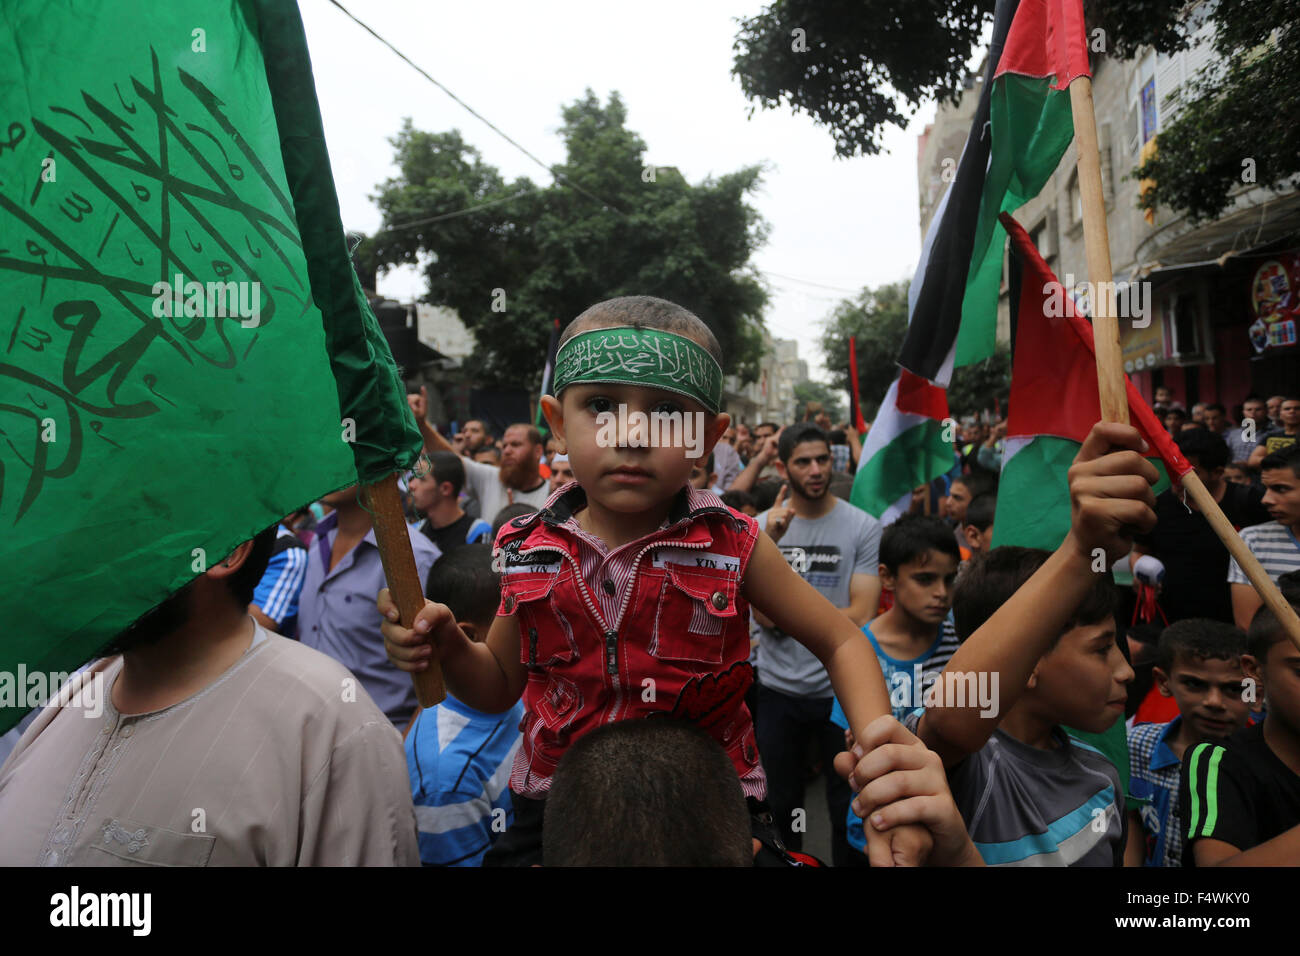 Hamas Camp Stockfotos & Hamas Camp Bilder - Alamy